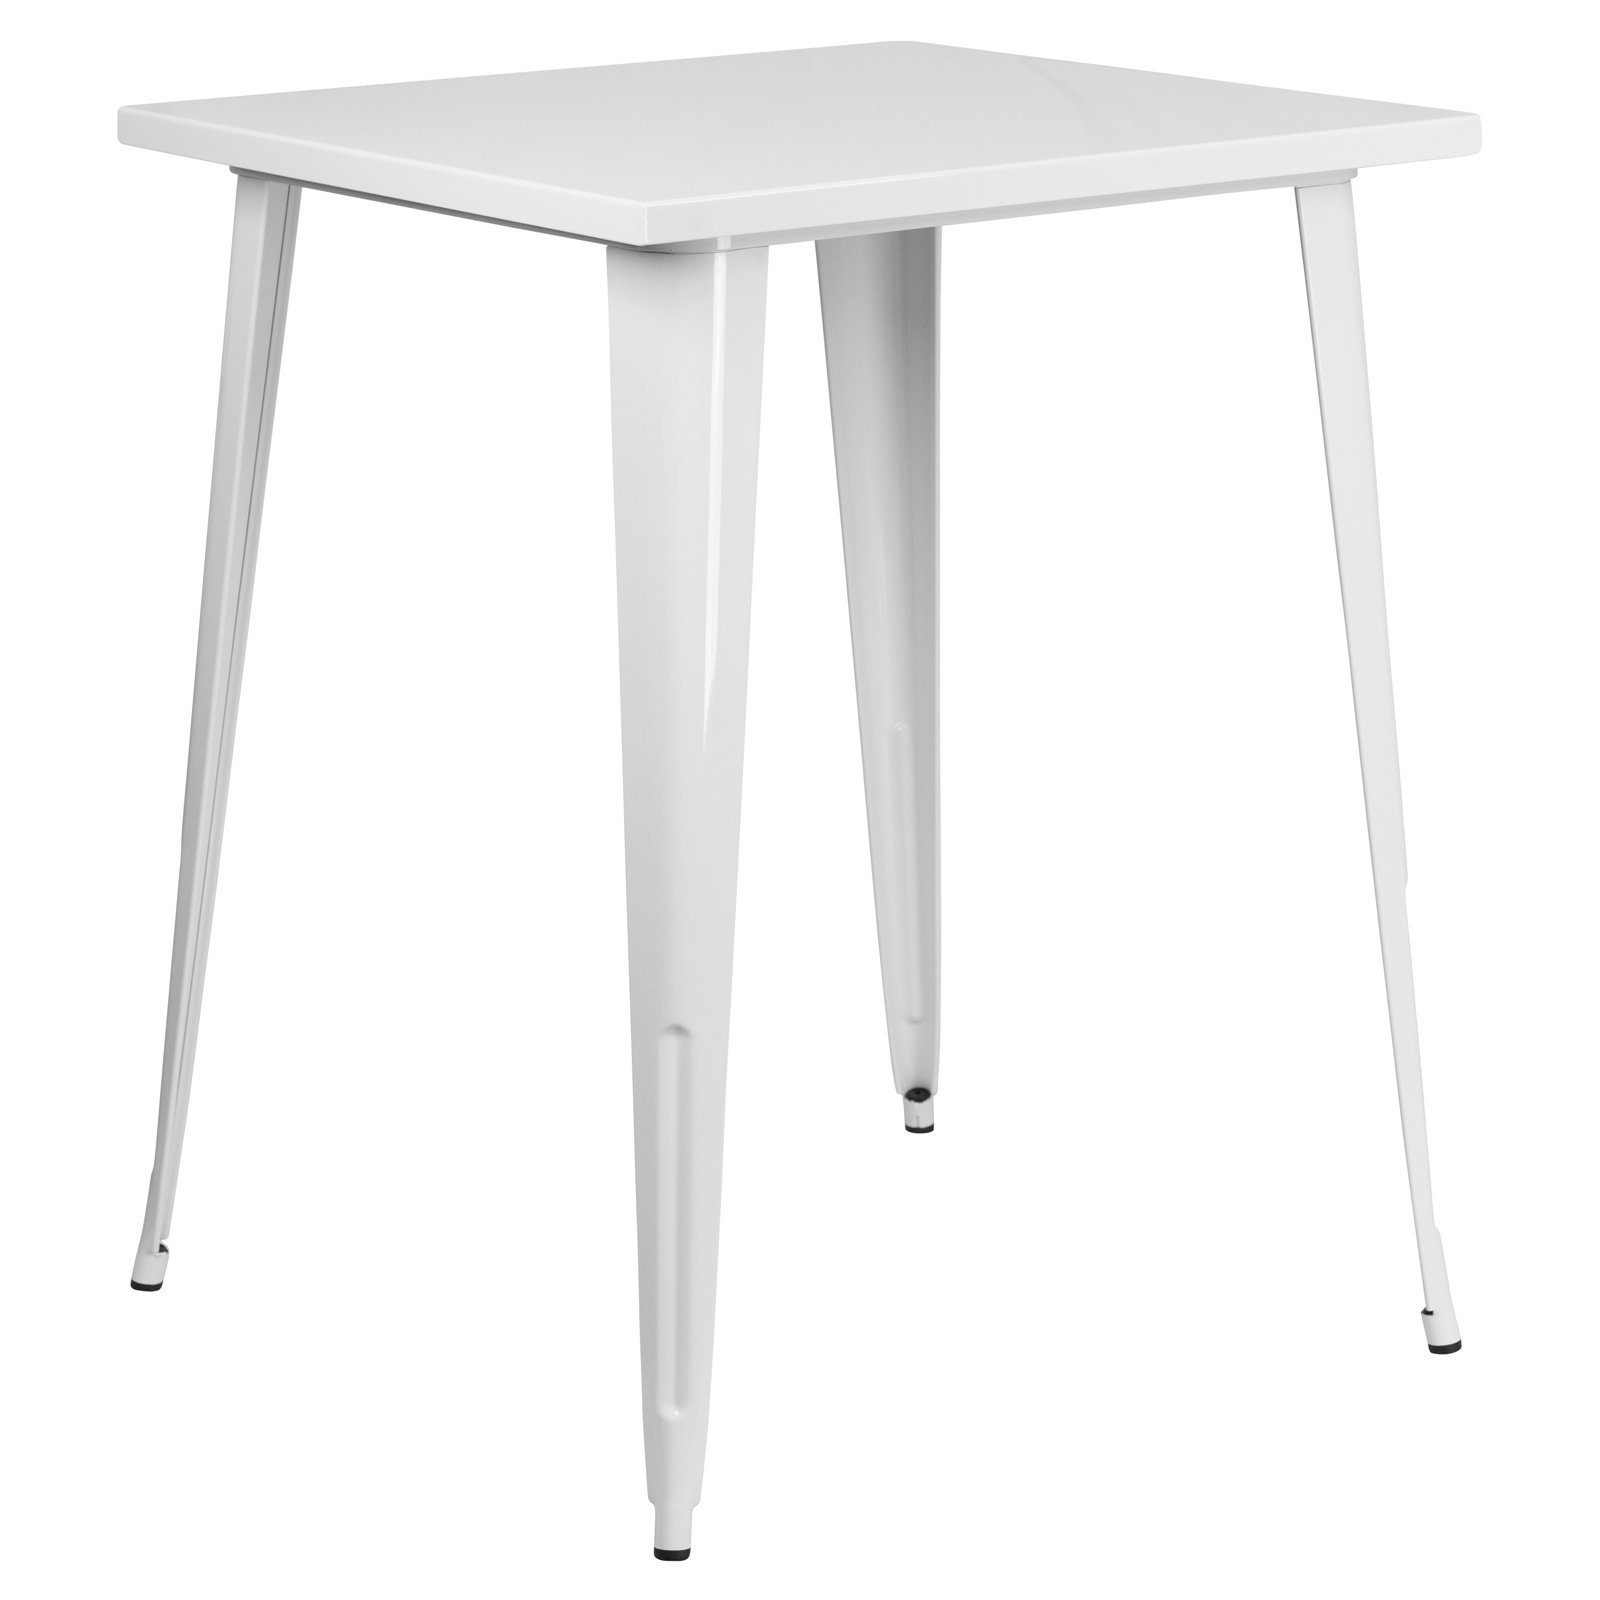 Basic 31.5'' Square Metal Indoor/Outdoor Bar Height Table with Protective Rubber Feet to Prevent Floor Damage, Thick Brace Underneath for Added Stability, White + Expert Home Guide by Love US